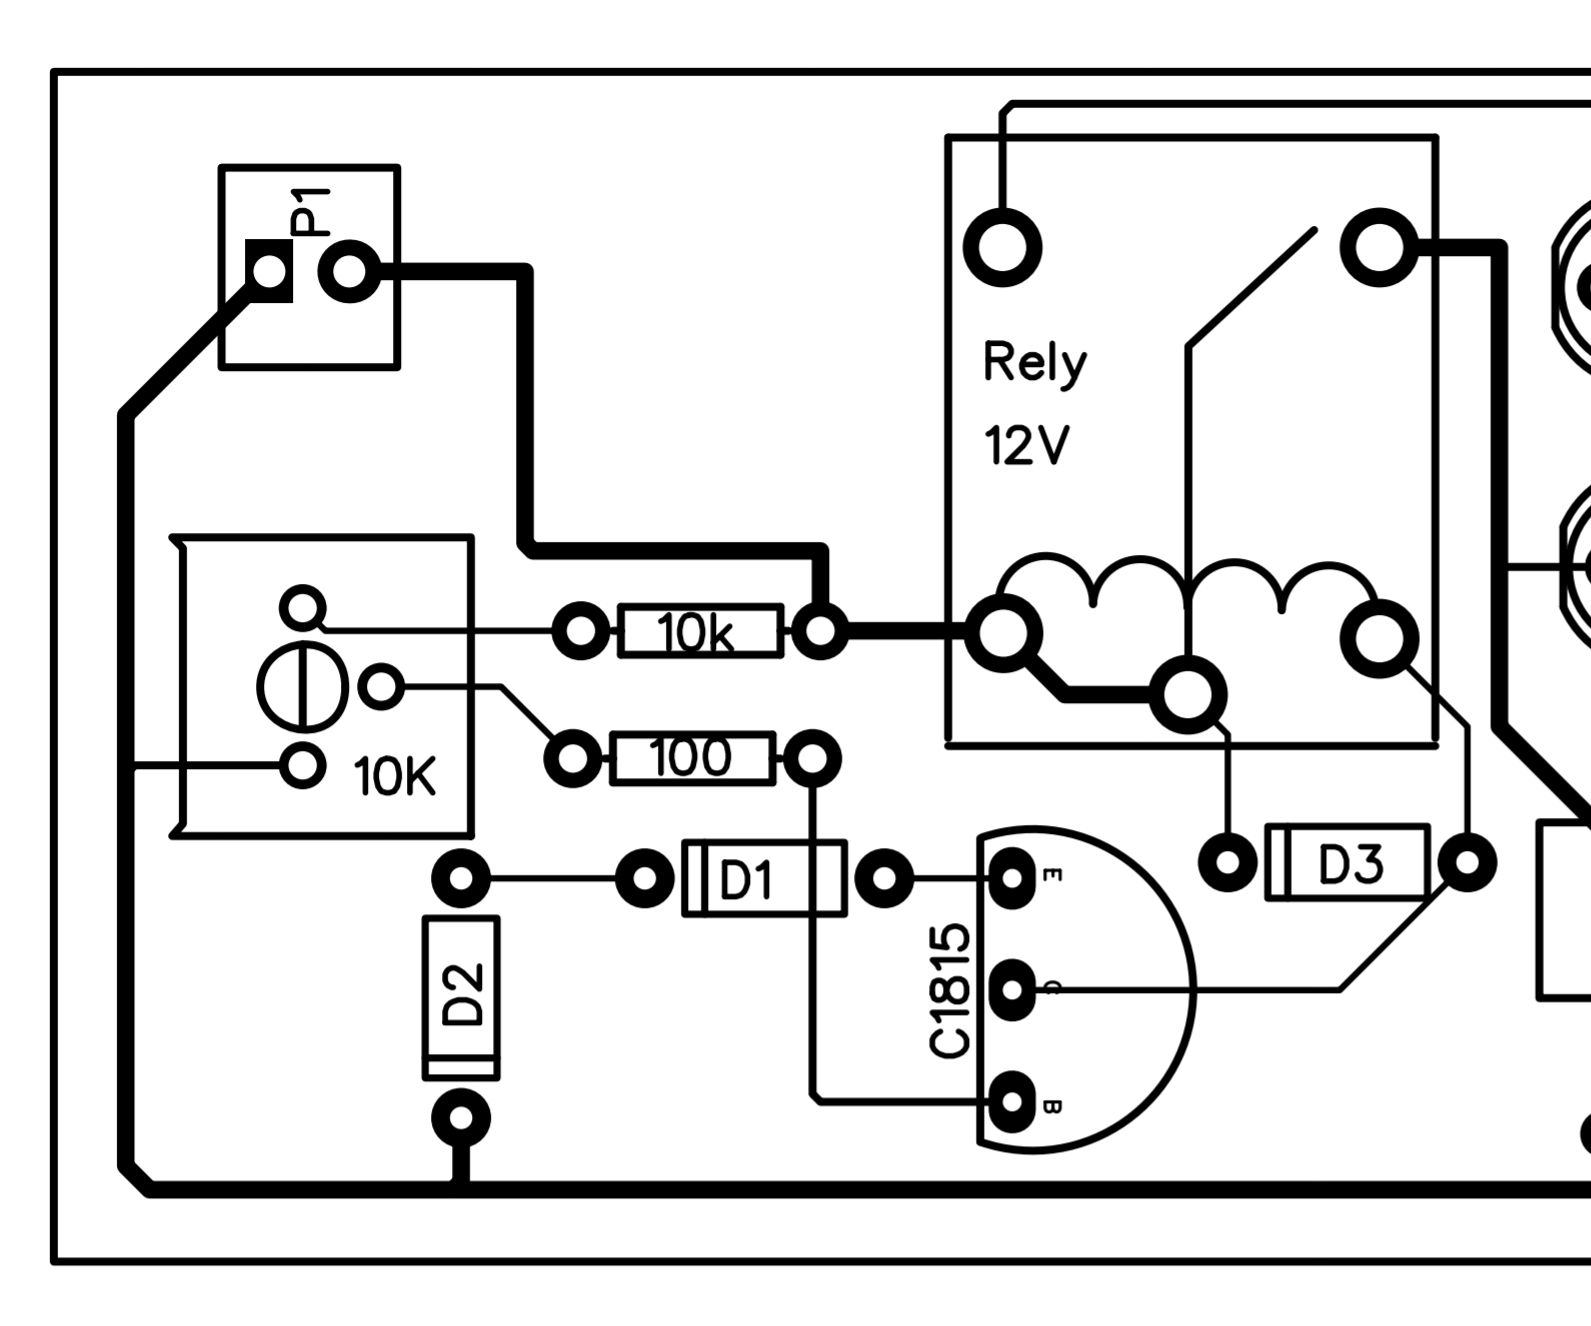 6v battery ups circuit diagram automatic wiring diagram repair 6v battery ups circuit diagram automatic [ 1591 x 1326 Pixel ]